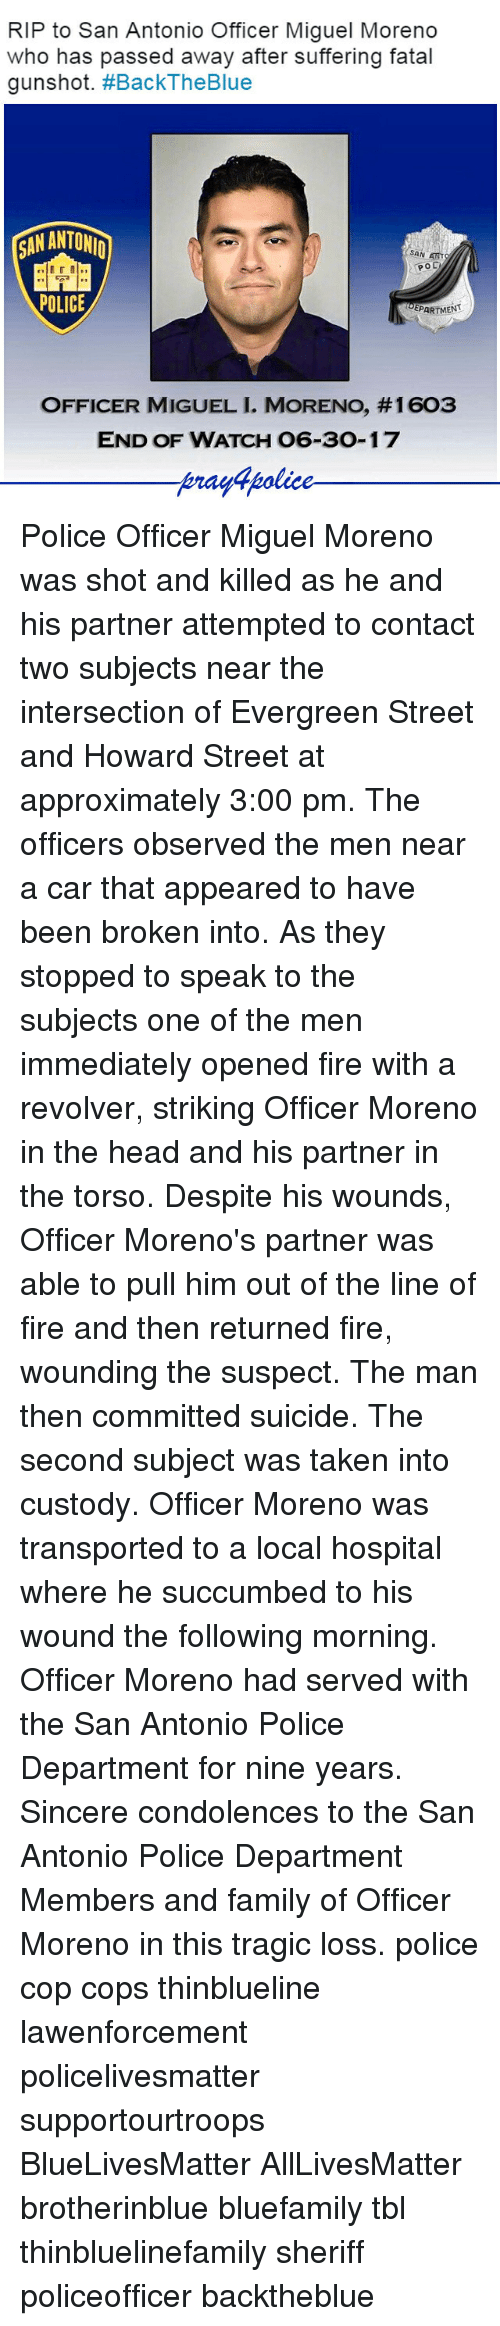 Miguels: RIP to San Antonio Officer Miguel Moreno  who has passed away after suffering fatal  gunshot. #BackTheBlue  SAN ANT  POLICE  EPARTMENT  OFFICER MIGUEL I. MORENO, #1603  END OF WATCH 06-30-17  prayfpolice Police Officer Miguel Moreno was shot and killed as he and his partner attempted to contact two subjects near the intersection of Evergreen Street and Howard Street at approximately 3:00 pm. The officers observed the men near a car that appeared to have been broken into. As they stopped to speak to the subjects one of the men immediately opened fire with a revolver, striking Officer Moreno in the head and his partner in the torso. Despite his wounds, Officer Moreno's partner was able to pull him out of the line of fire and then returned fire, wounding the suspect. The man then committed suicide. The second subject was taken into custody. Officer Moreno was transported to a local hospital where he succumbed to his wound the following morning. Officer Moreno had served with the San Antonio Police Department for nine years. Sincere condolences to the San Antonio Police Department Members and family of Officer Moreno in this tragic loss. police cop cops thinblueline lawenforcement policelivesmatter supportourtroops BlueLivesMatter AllLivesMatter brotherinblue bluefamily tbl thinbluelinefamily sheriff policeofficer backtheblue